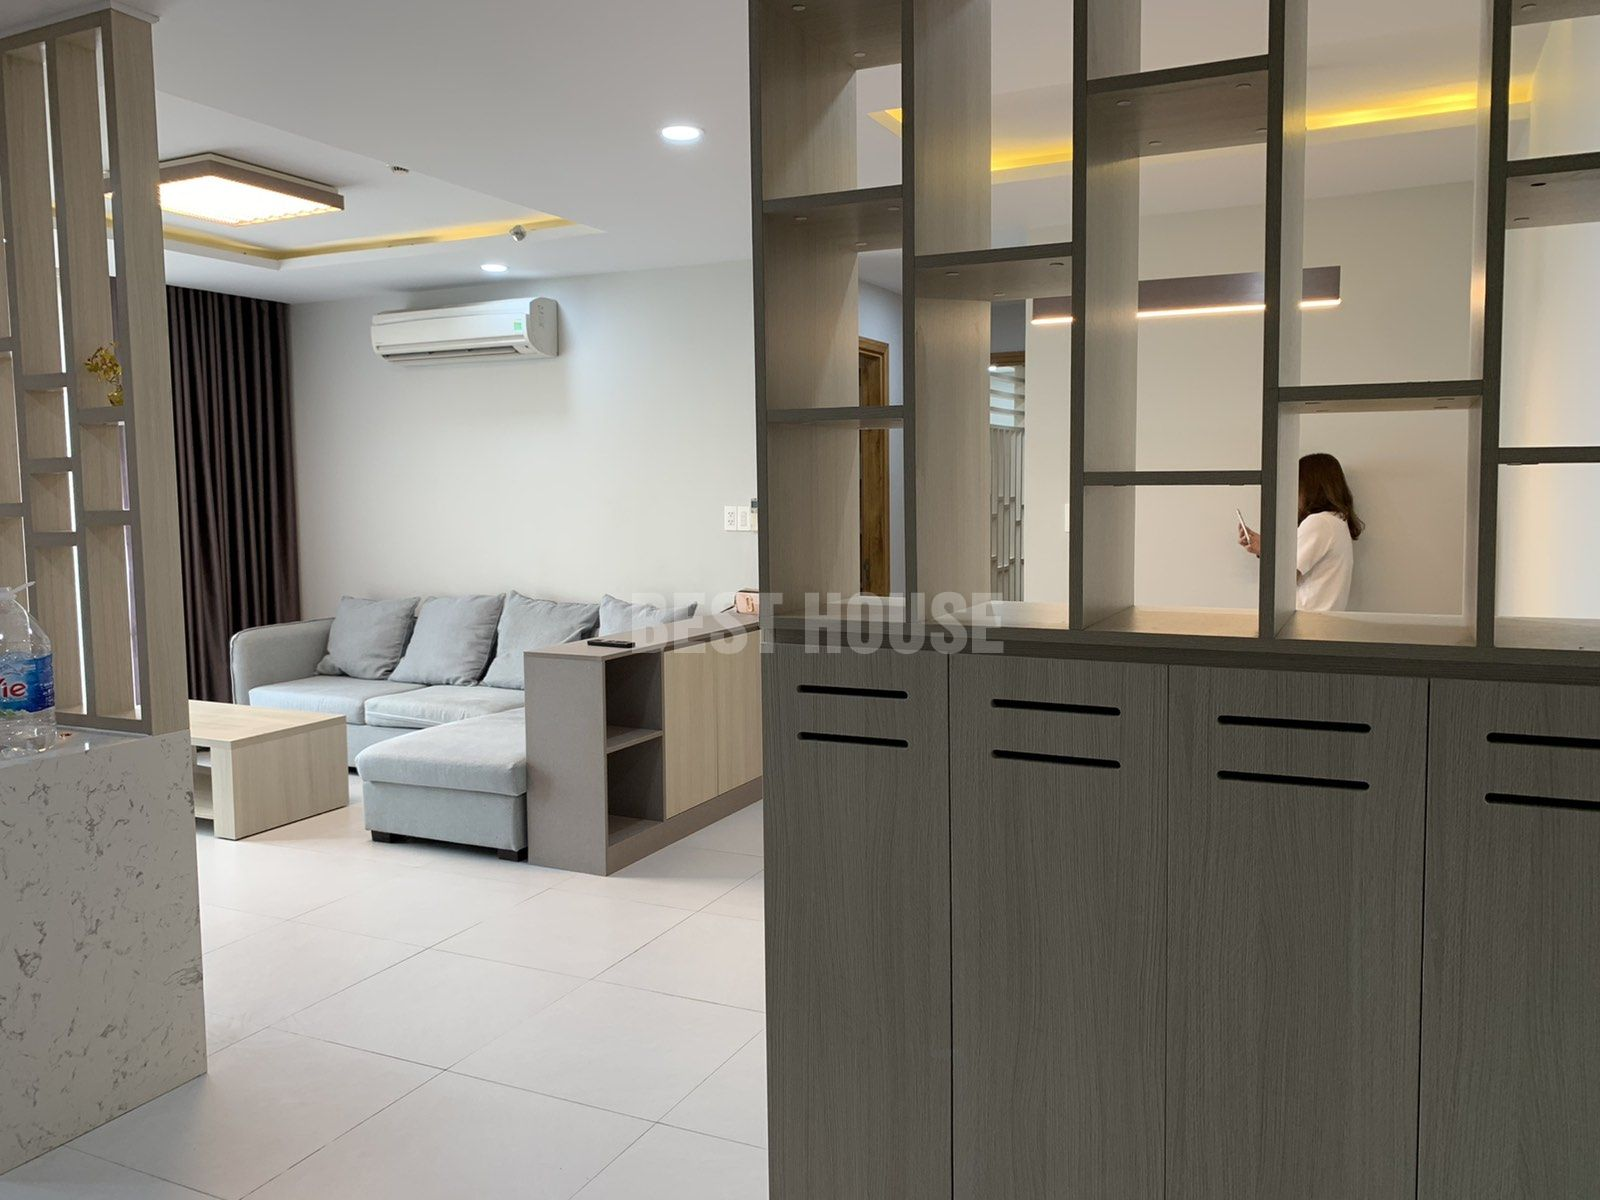 green-valley-apartment-for-rent-in-phu-my-hung-district-7-hcmc